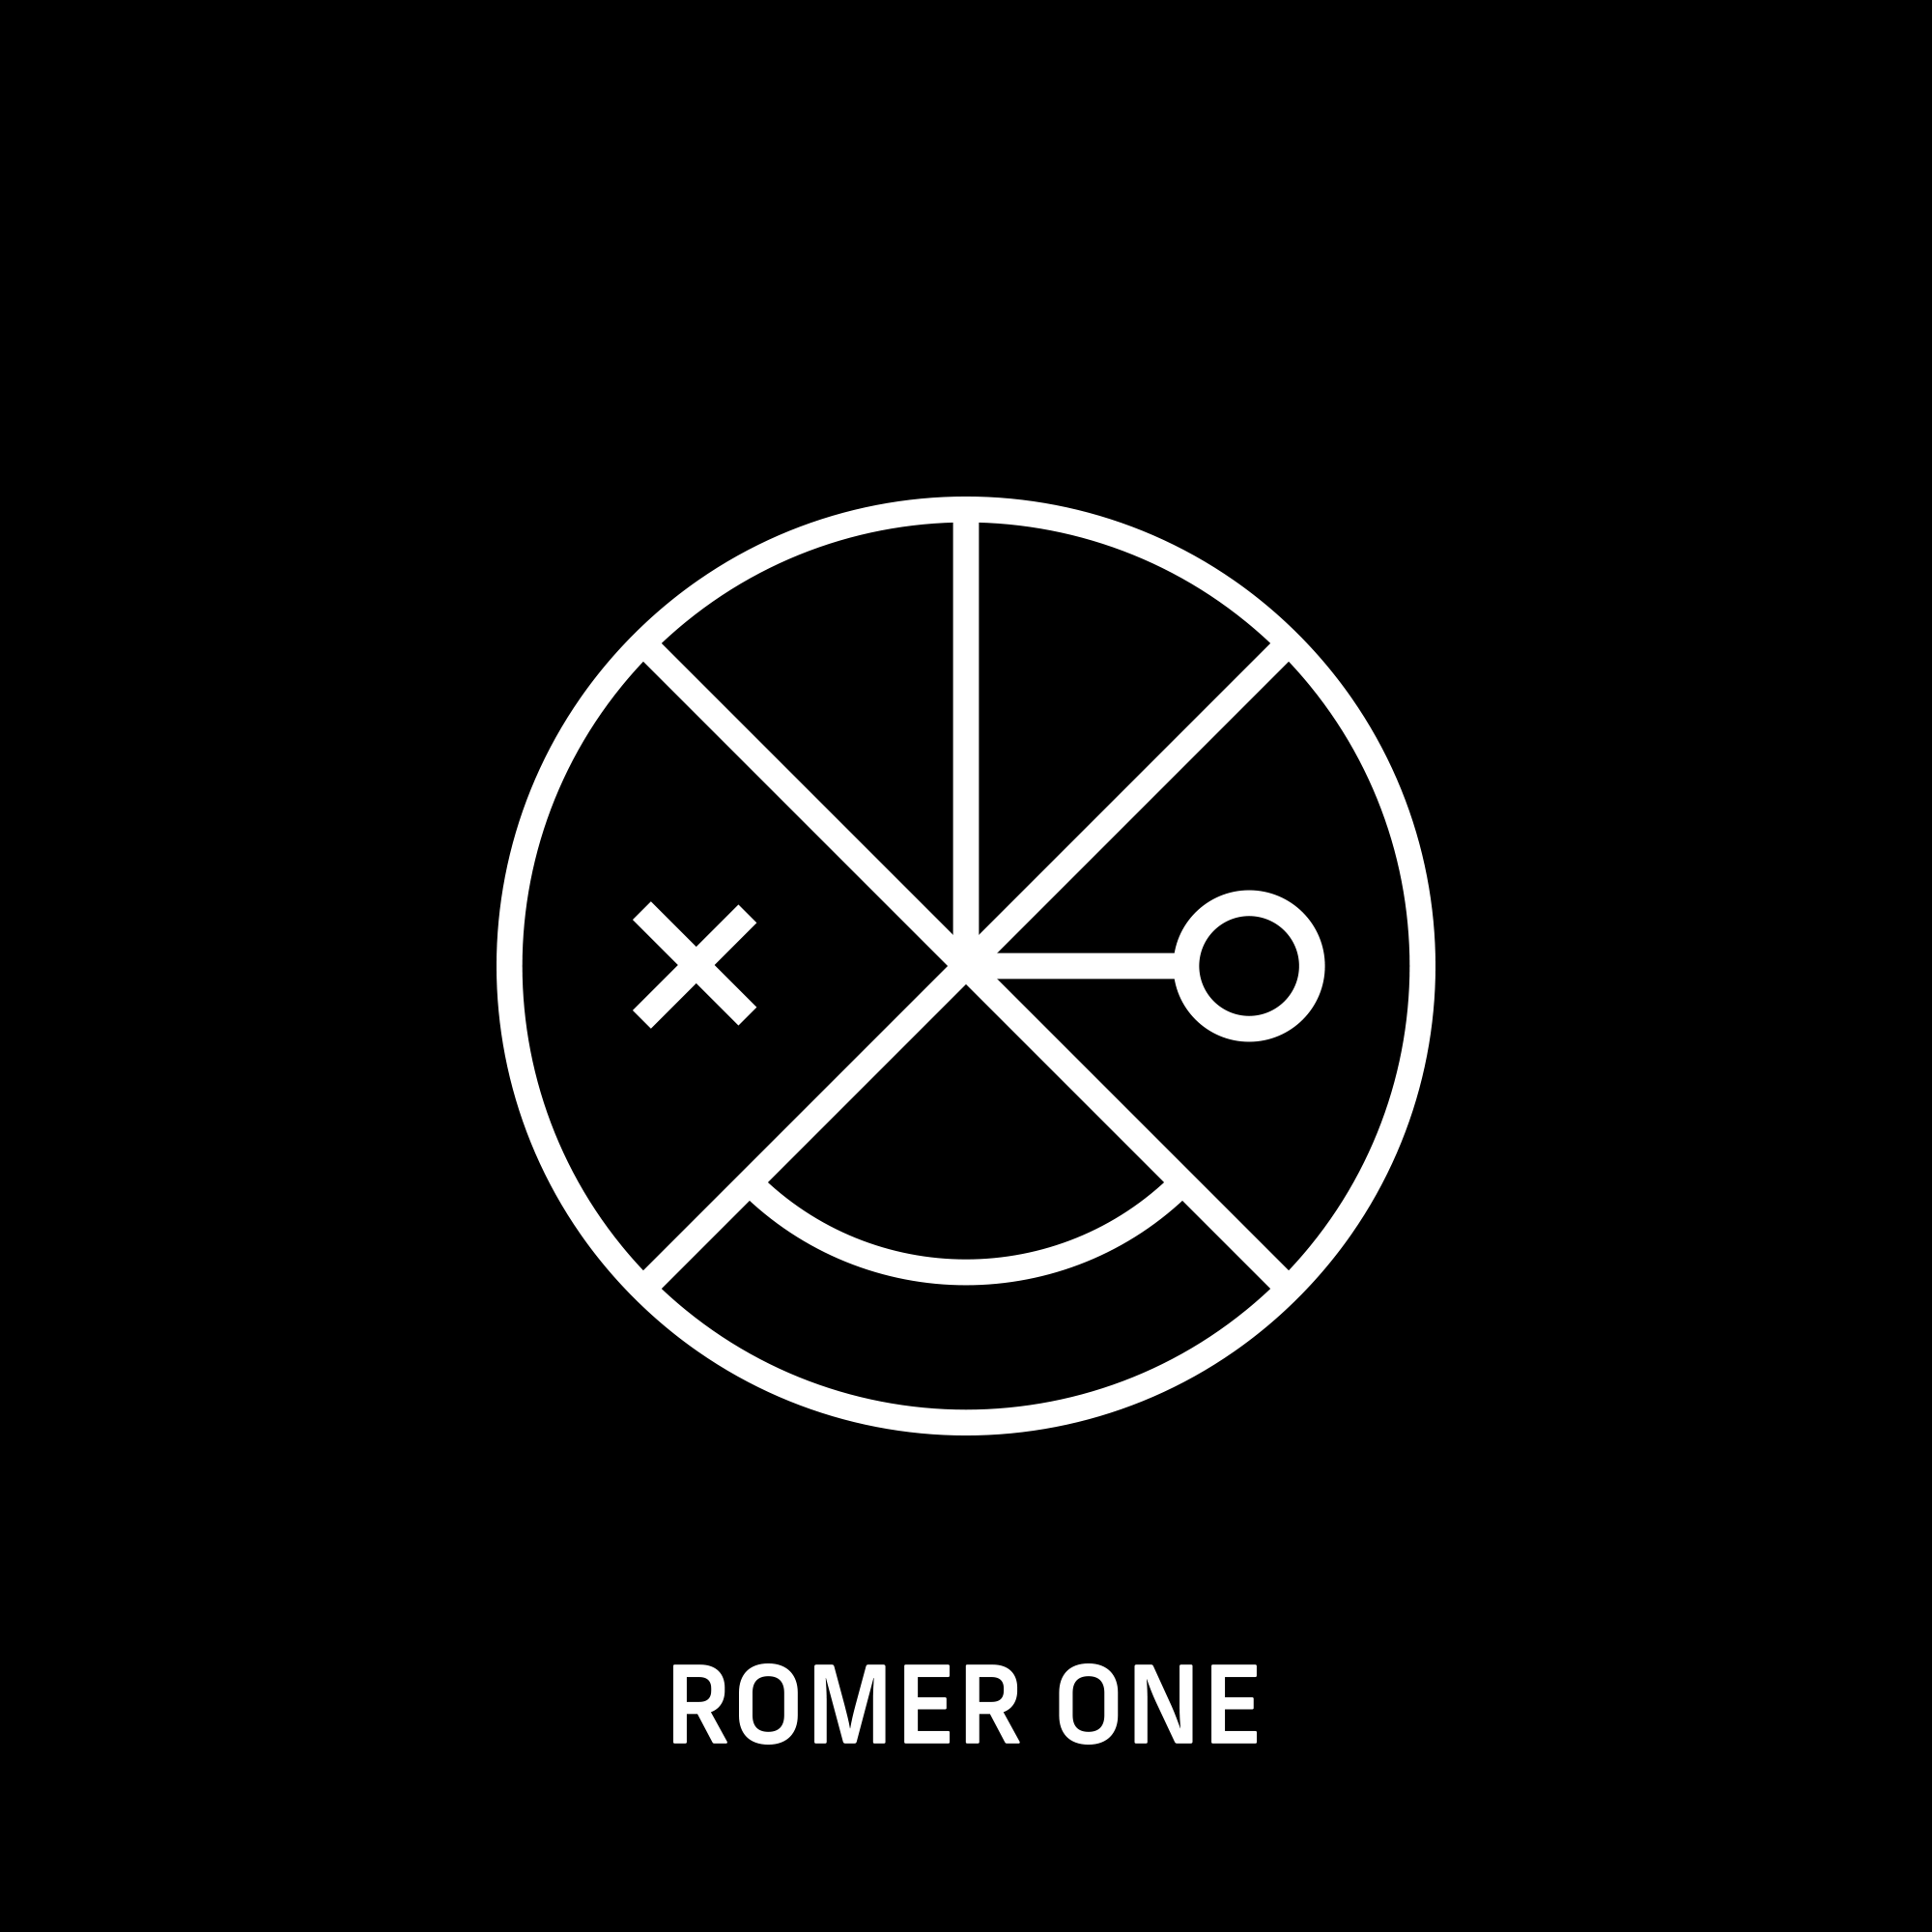 andreas_weiland_romer_one